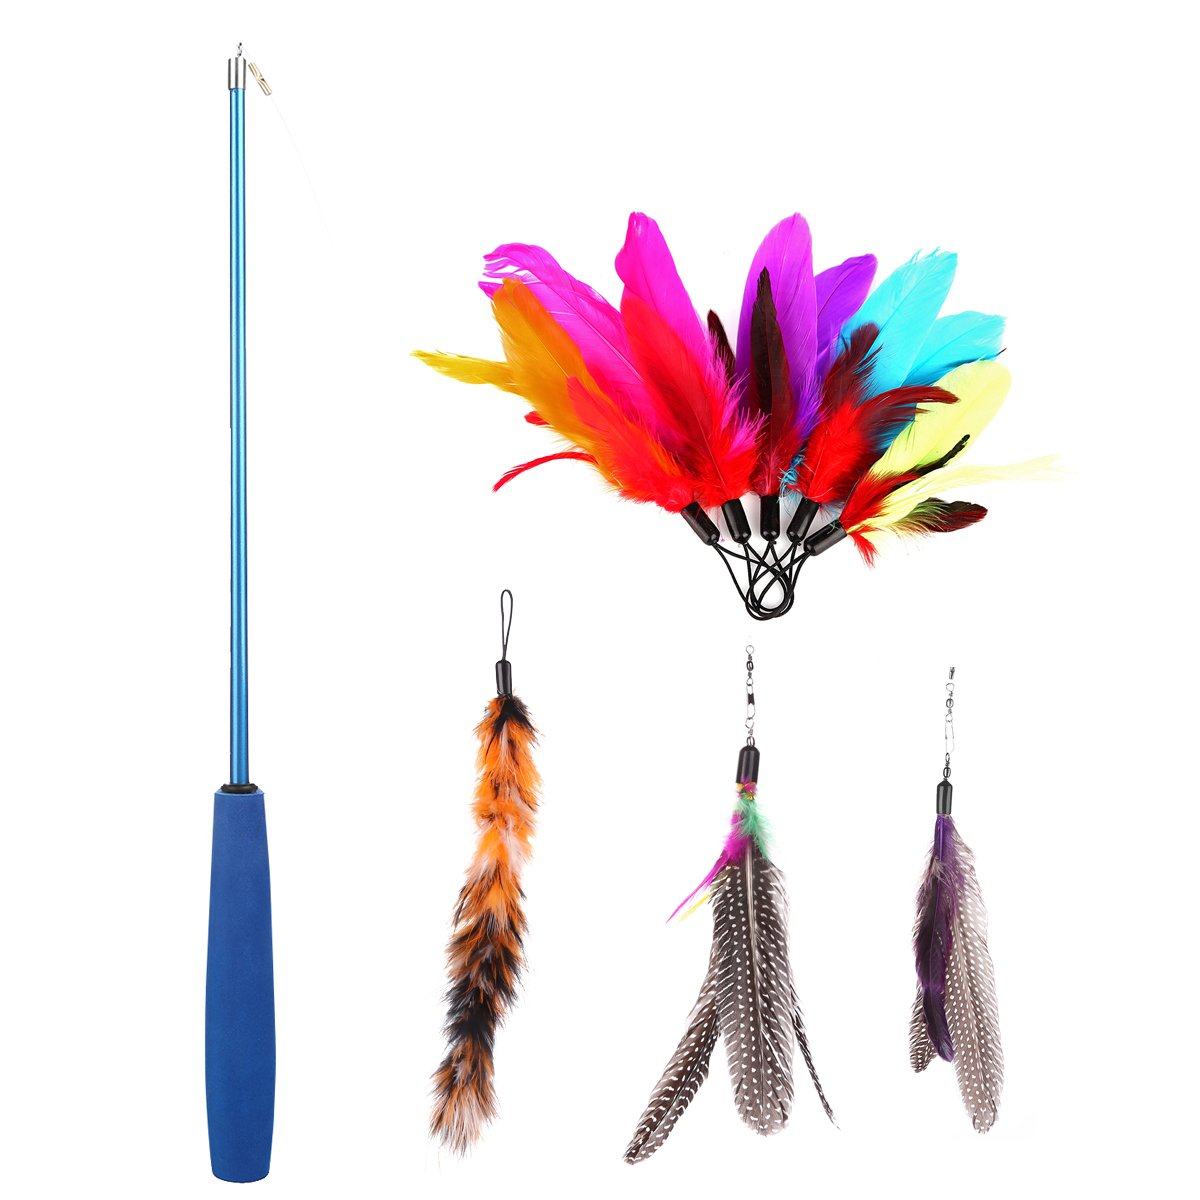 Etrech Retractable Wand Rod with 8 Piece Assorted Feather Cat Toy, Blue